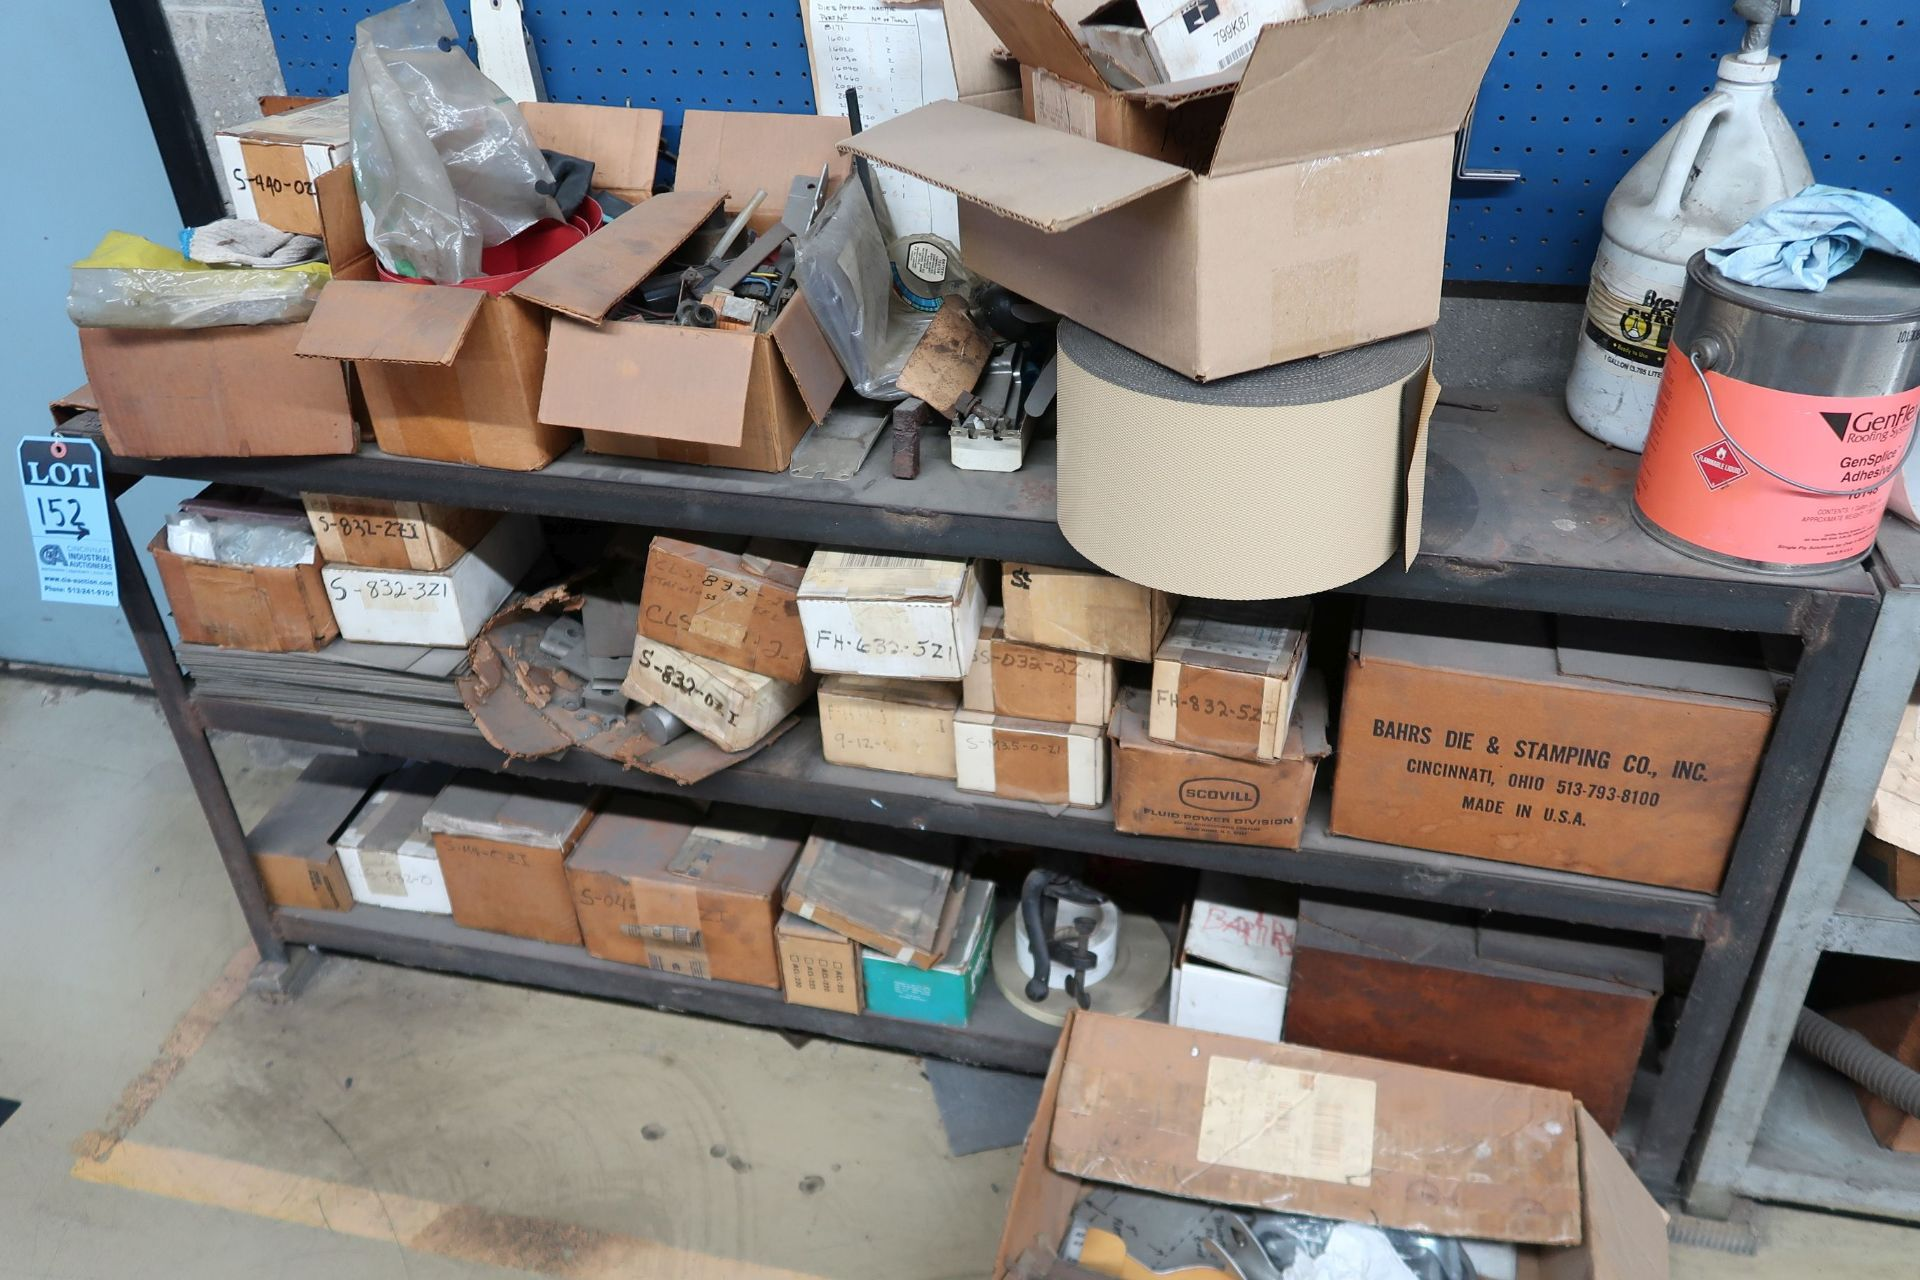 (LOT) CONTENTS OF RACK AGAINST WALL INCLUDING HARDWARE, TOOLS, ELECTRICAL PARTS (NO SOUND SYSTEM) - Image 6 of 6